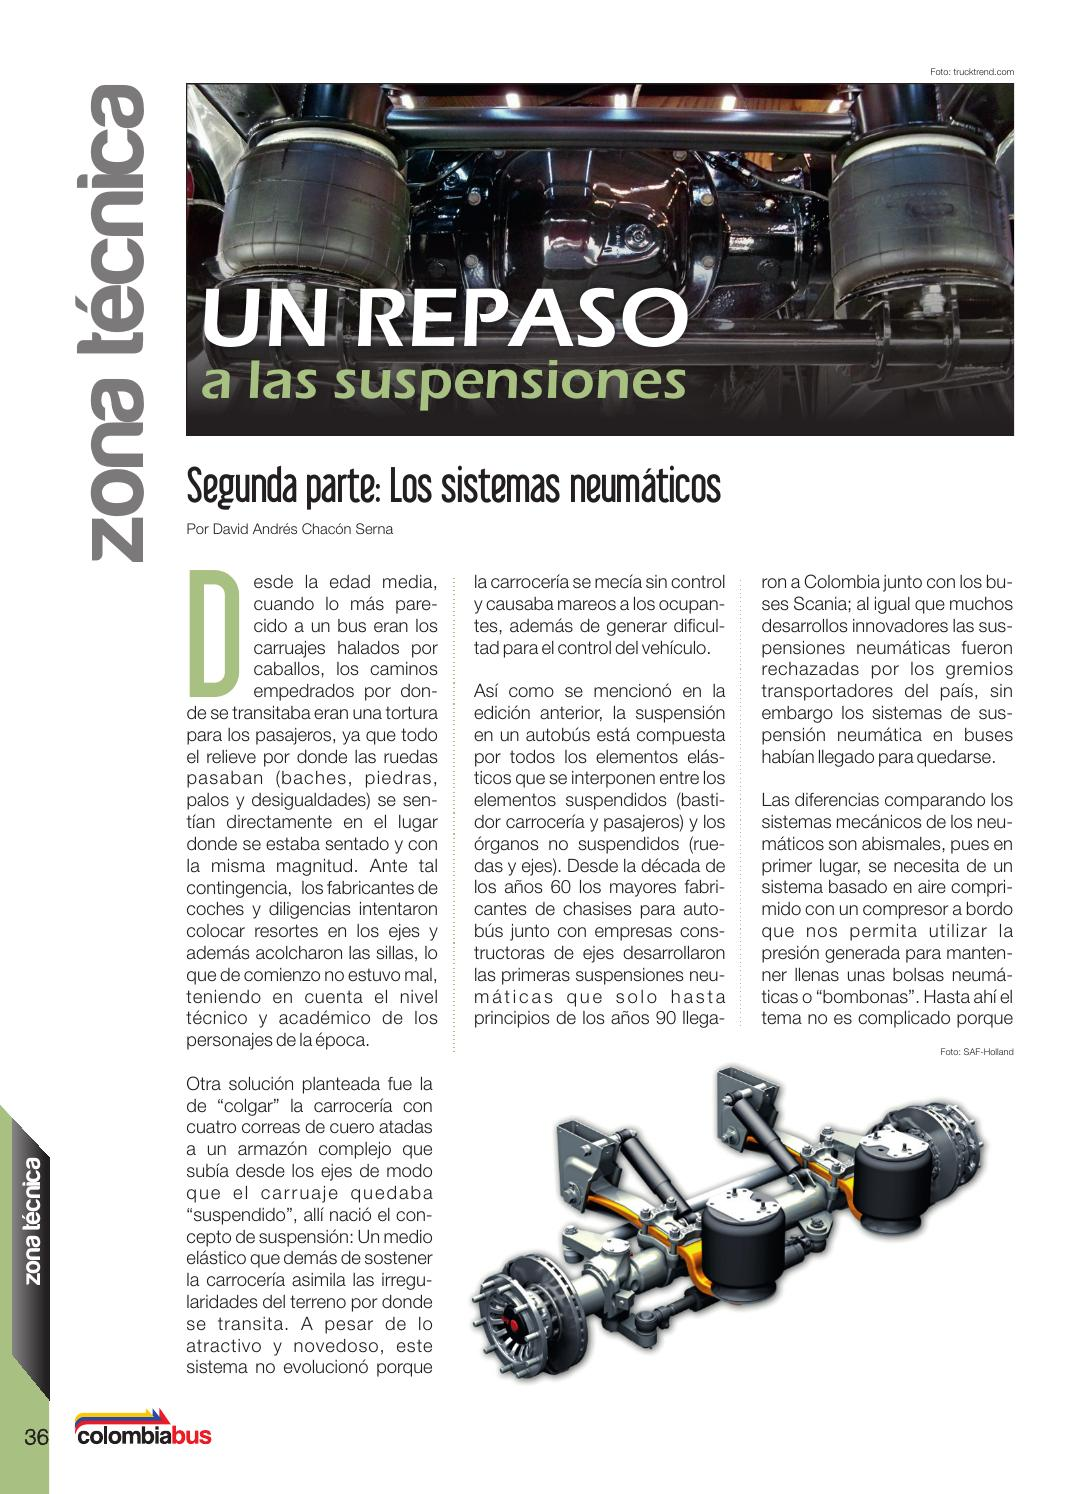 Revista Colombiabus abril 2016 - Ed.5 by Colombiabus - issuu